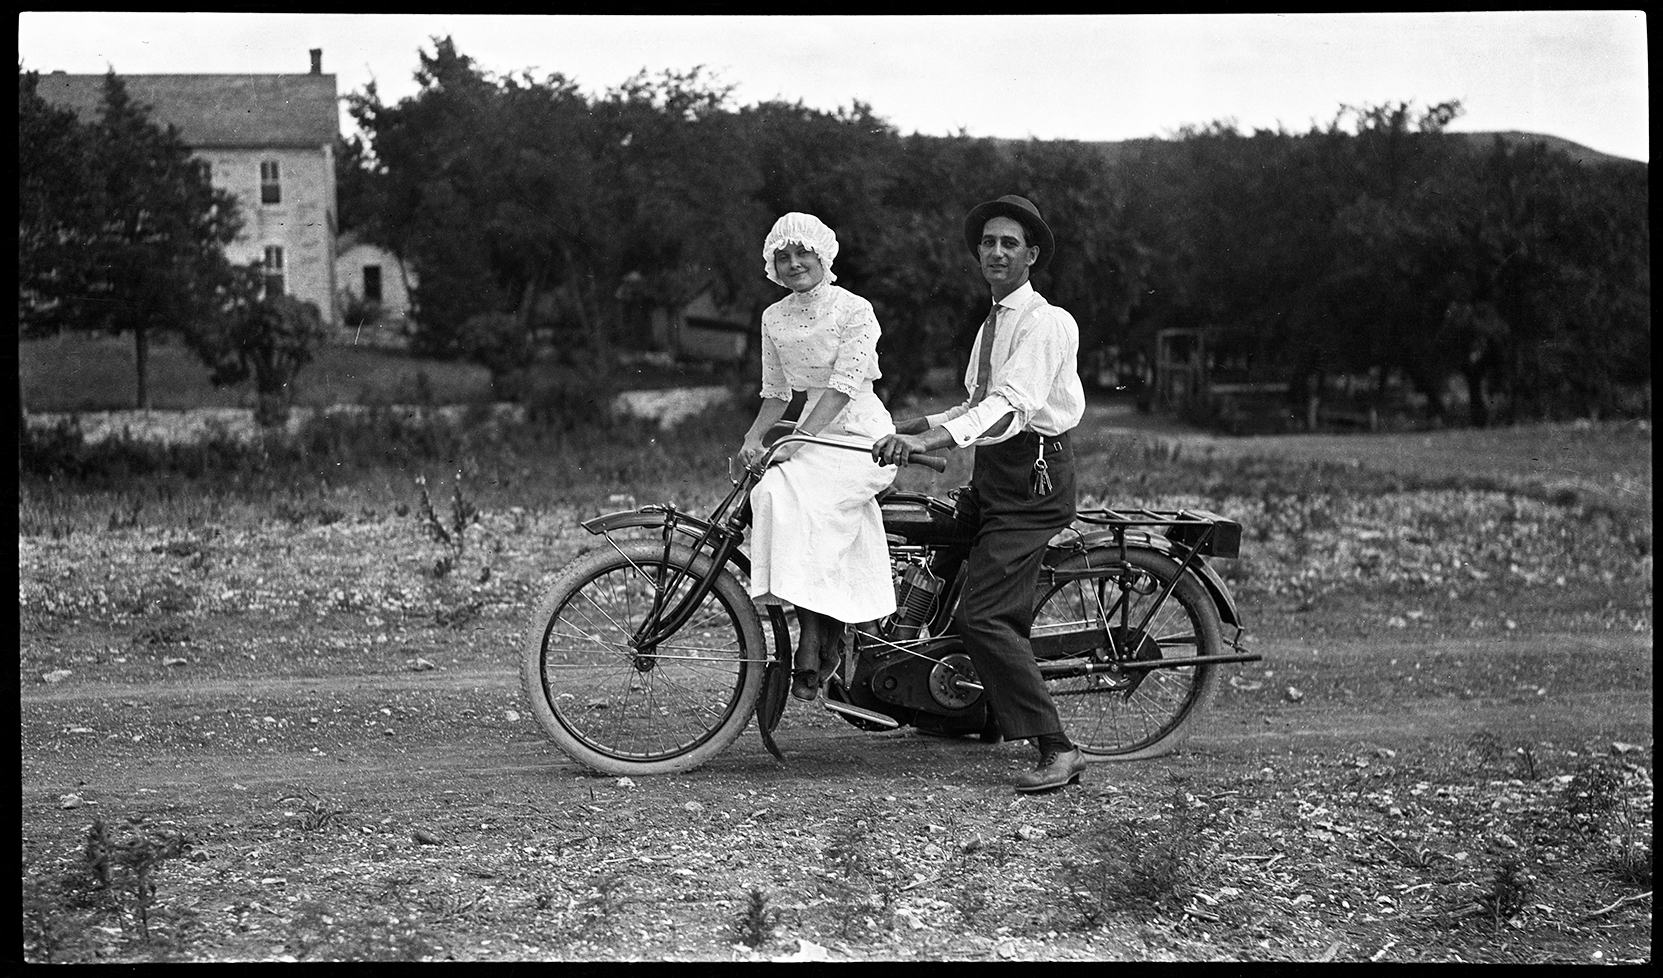 durso-f3-motorcycle-couple667_300dpi_3x5-copy